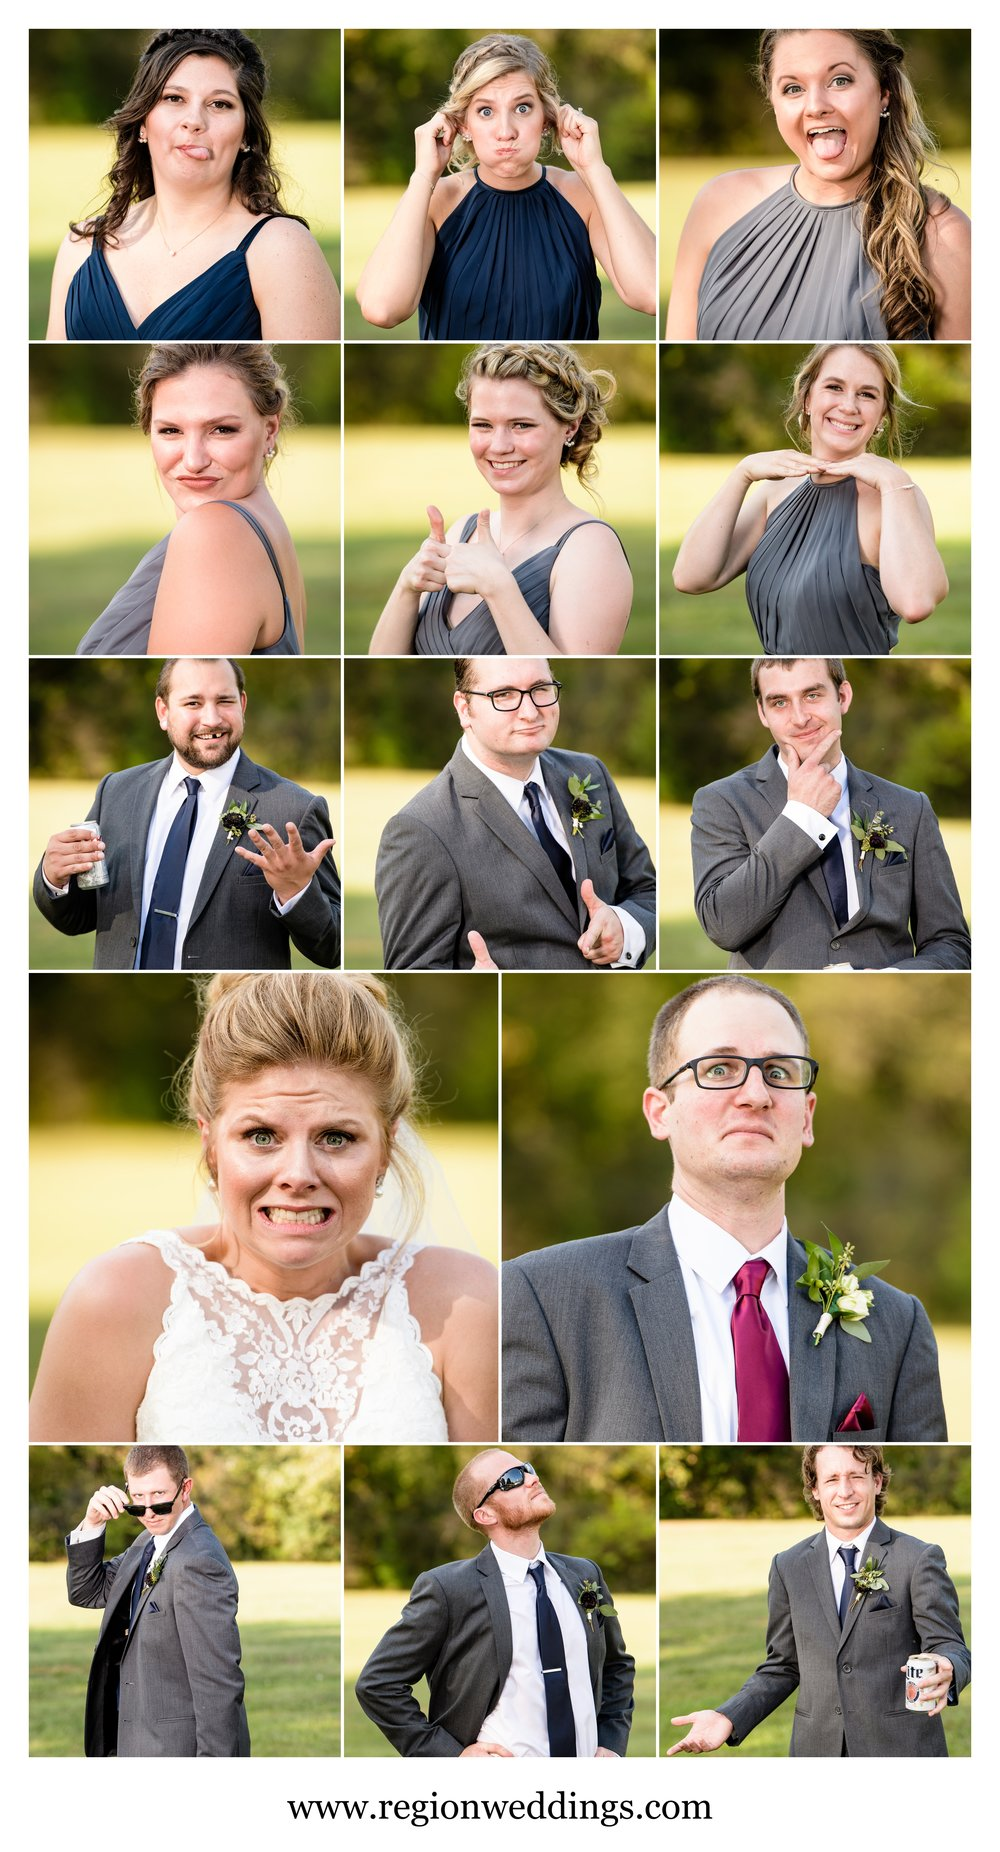 Awkward and strange wedding party portraits.